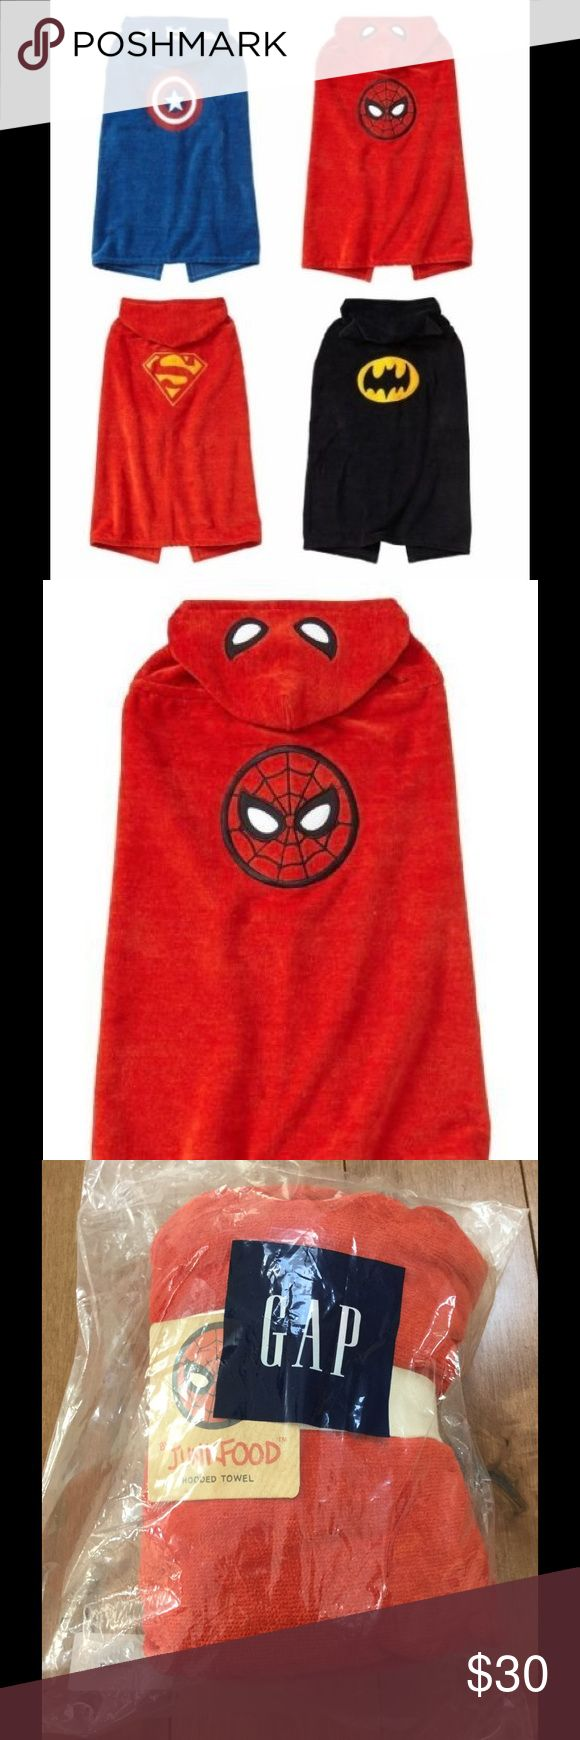 NWT Gap Junk Food Spider-Man hooded towel for kids Super cute kids Spider-Man hooded towel.  Brand new!  Great for little Spider-Man fans!!! GAP Swim